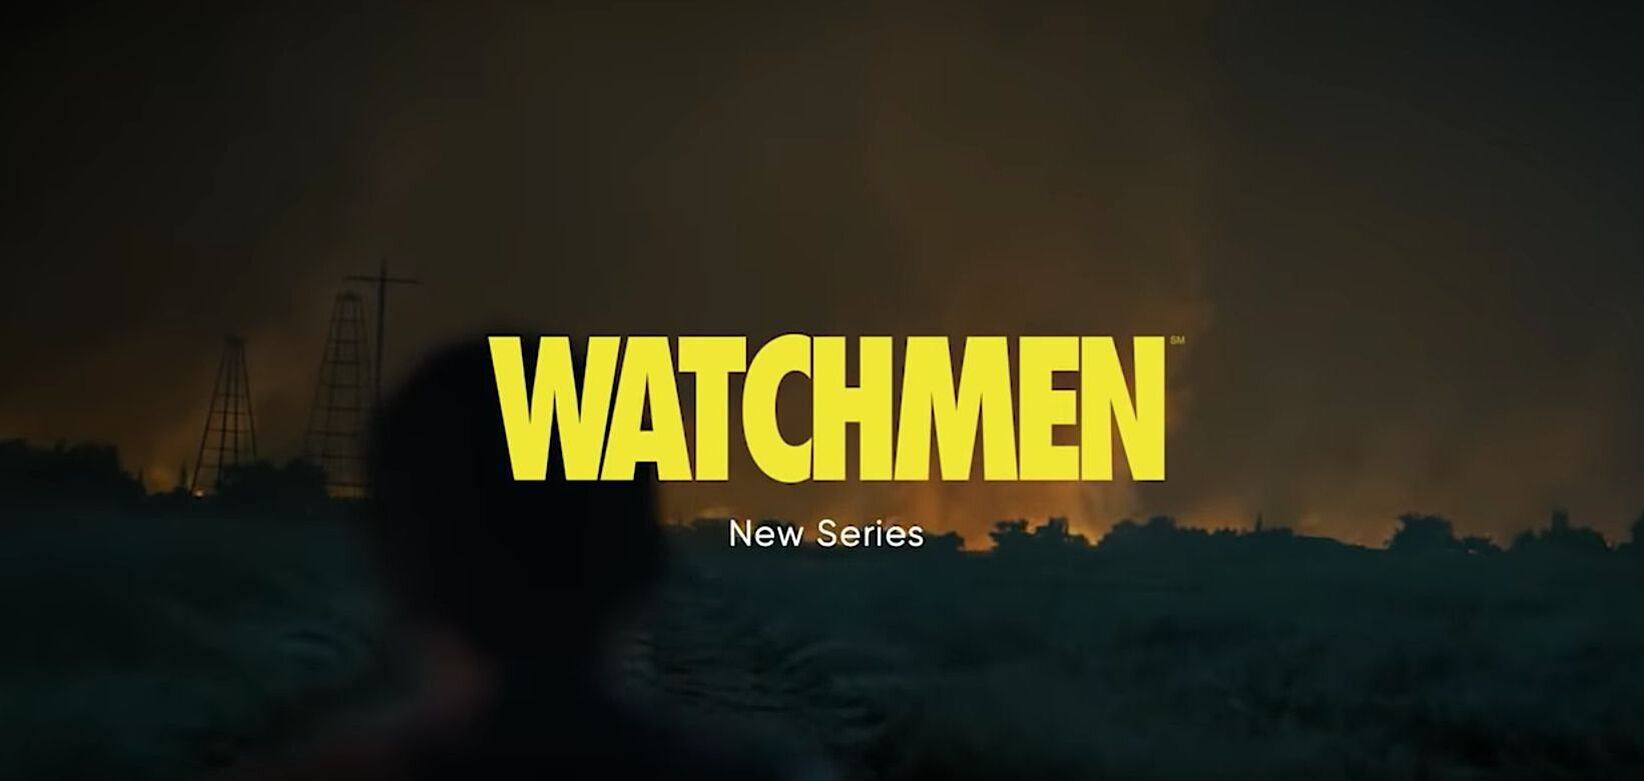 New Hbo Series 2019 Let's overanalyze the new footage from HBO's Watchmen series